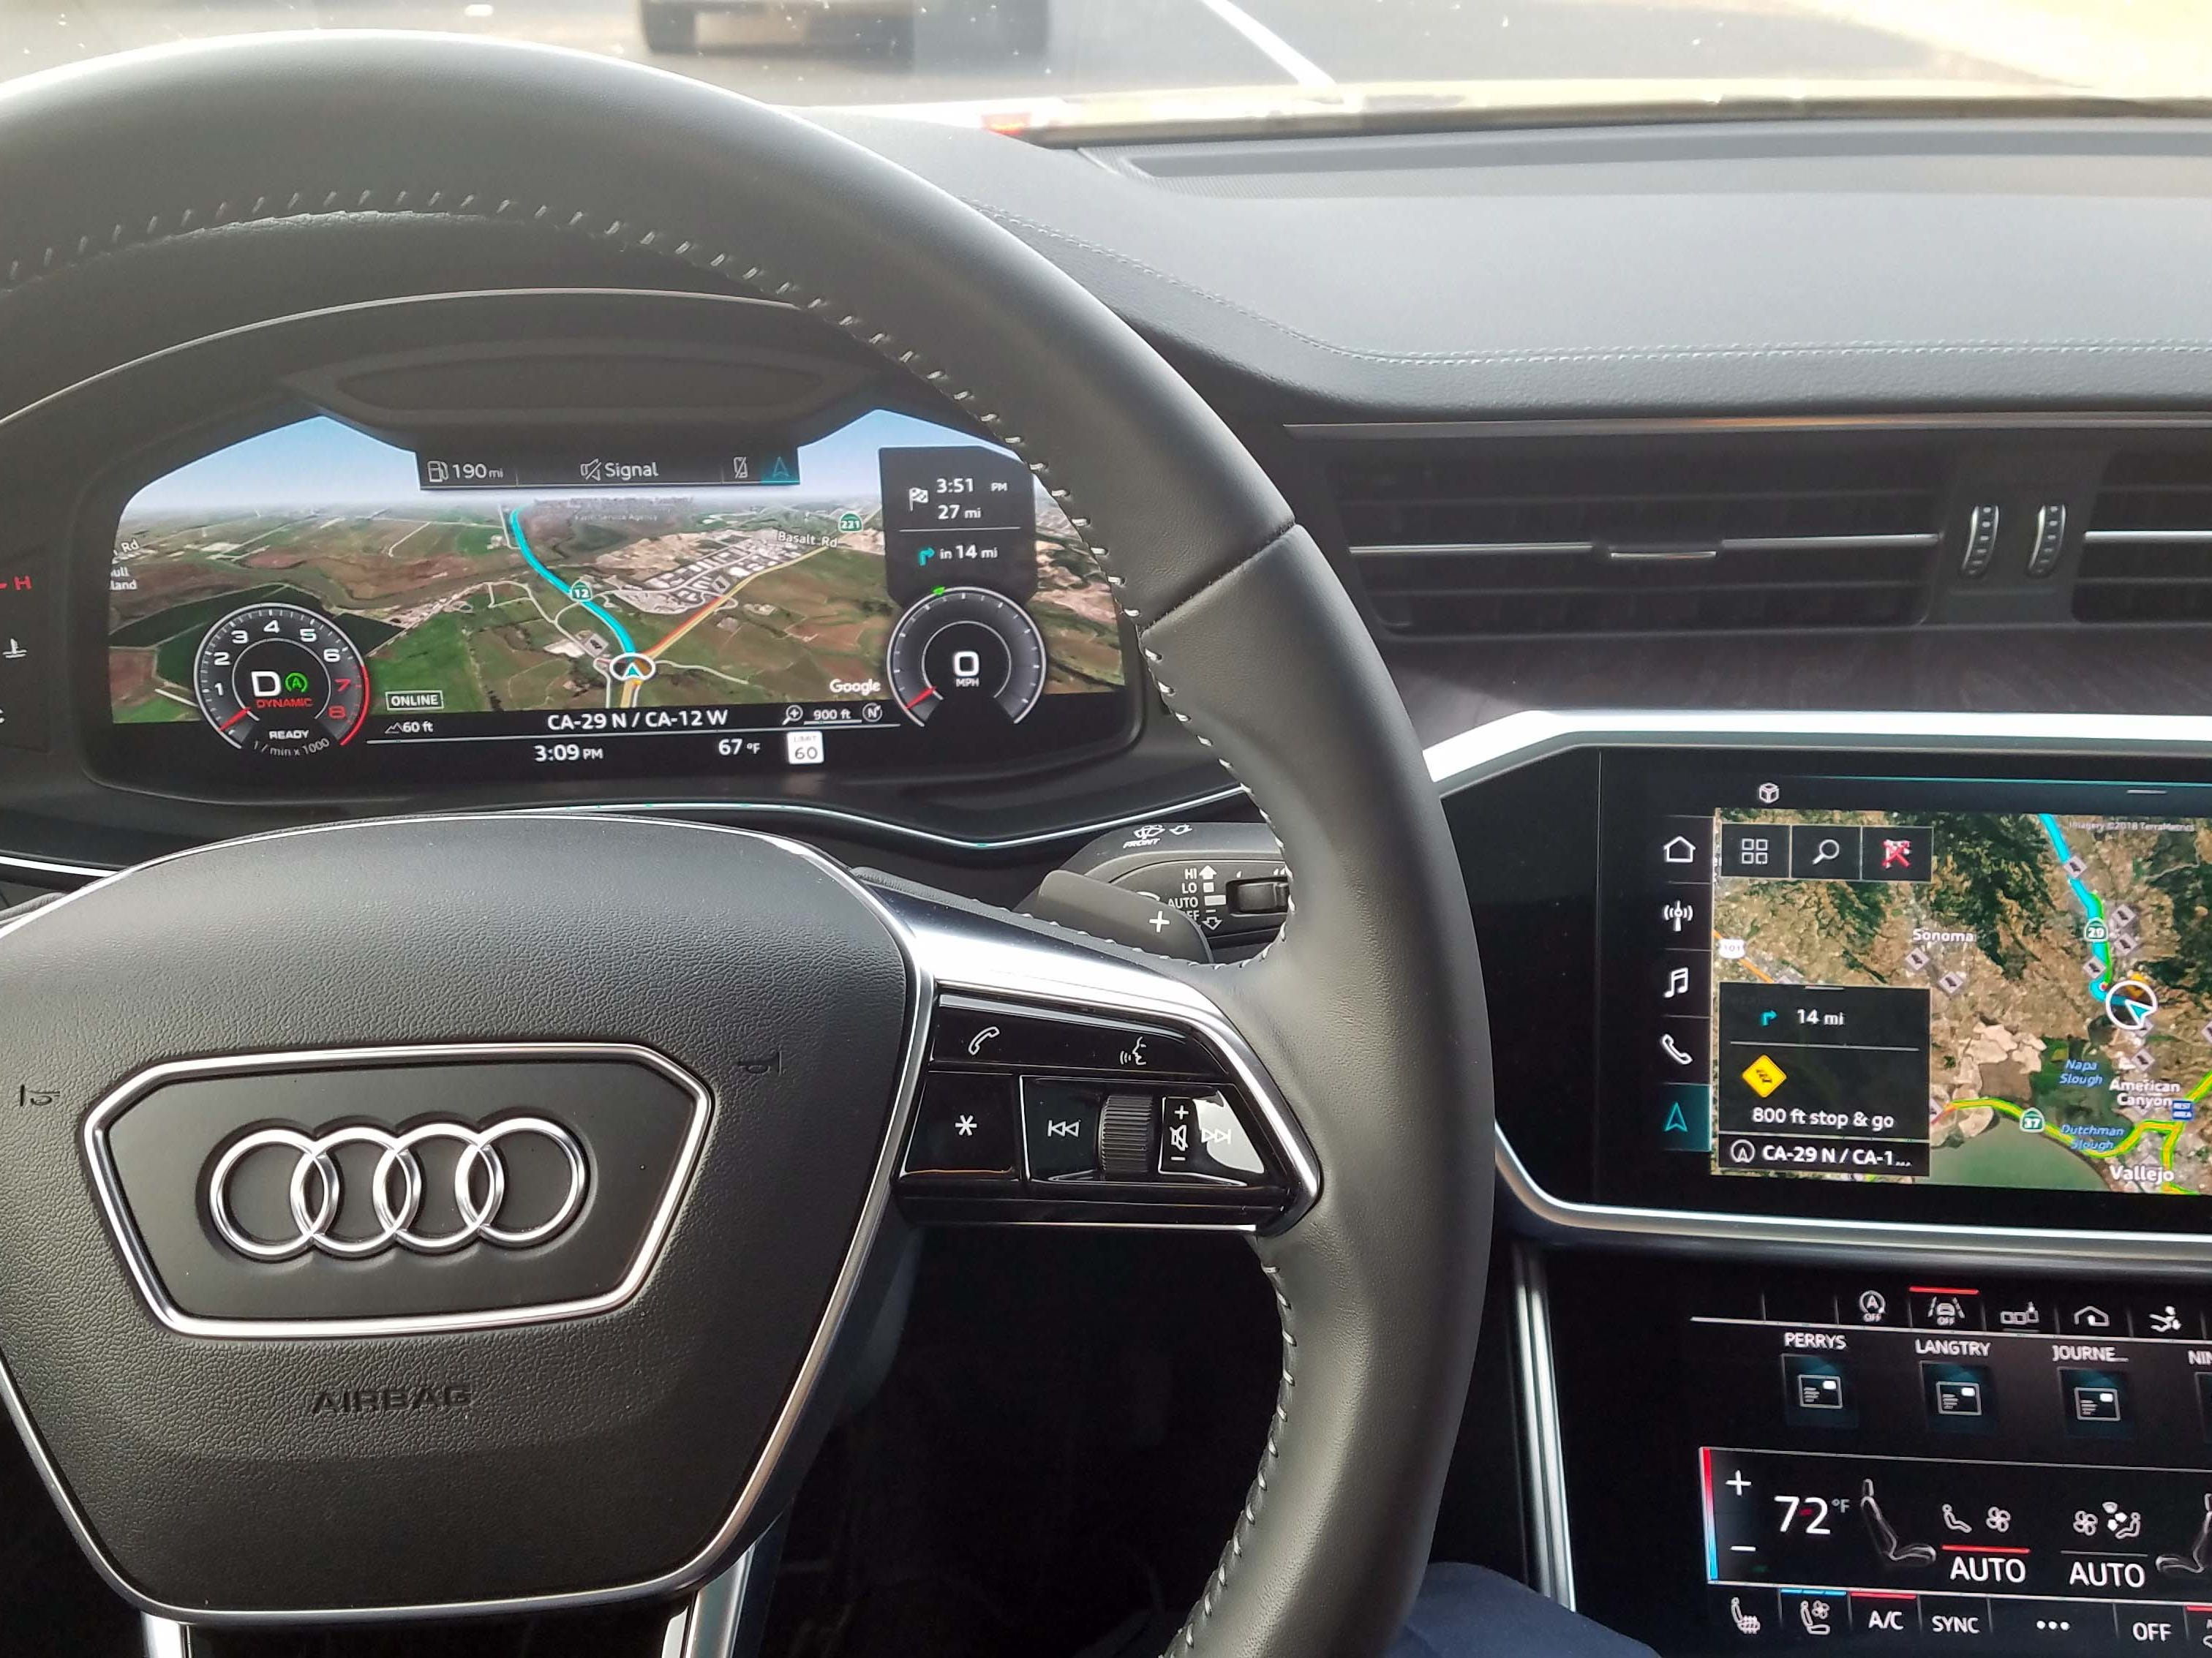 The 2019 Audi A7 complements its already dramatic, Virtual Cockpit instrument display with two large touchscreens in the console. The upper controls infotainment and navigation, and the lower controls climate and other functions.